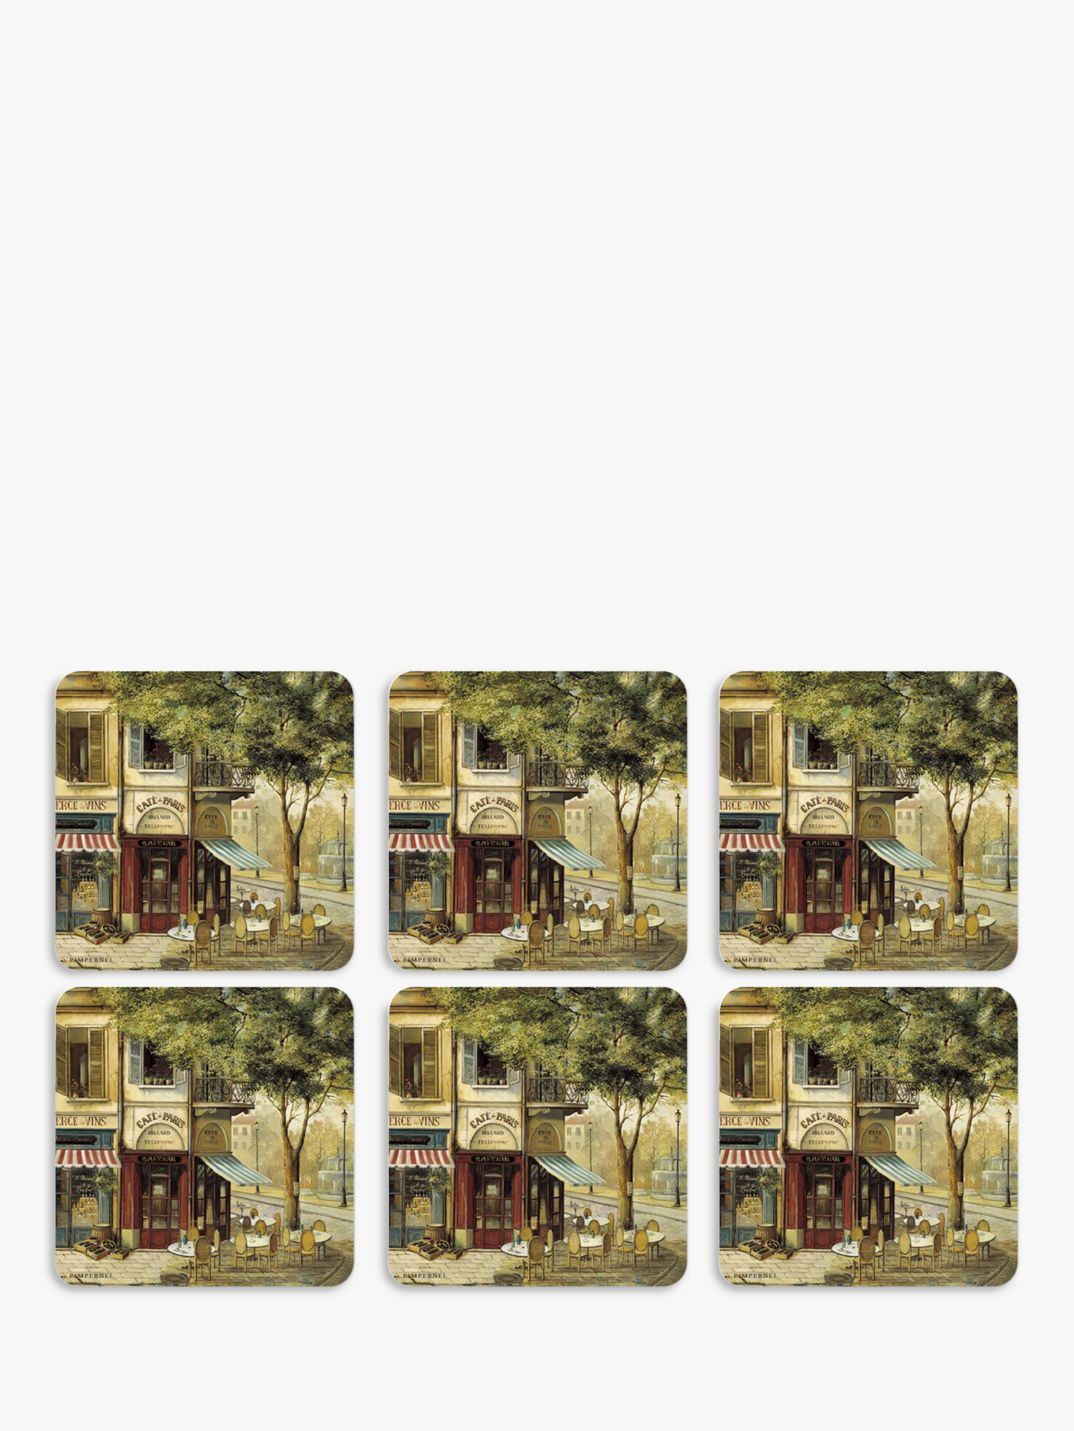 Pimpernel Pimpernel Parisian Scene Coasters, Set of 6